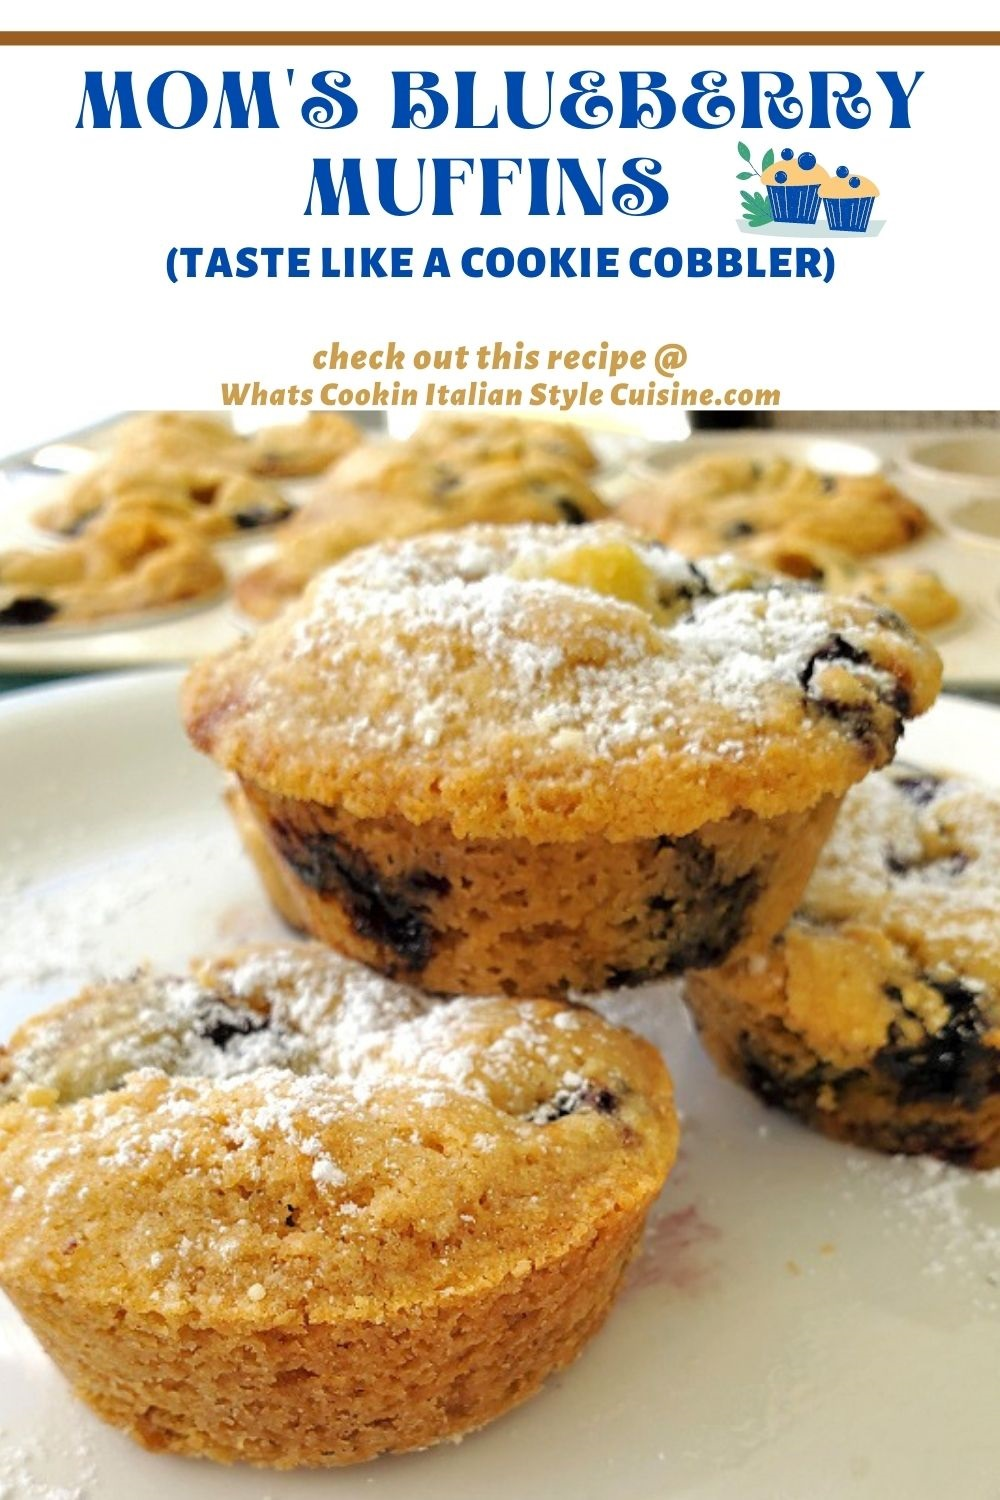 this is a pin on how to make blueberry muffins from scratch